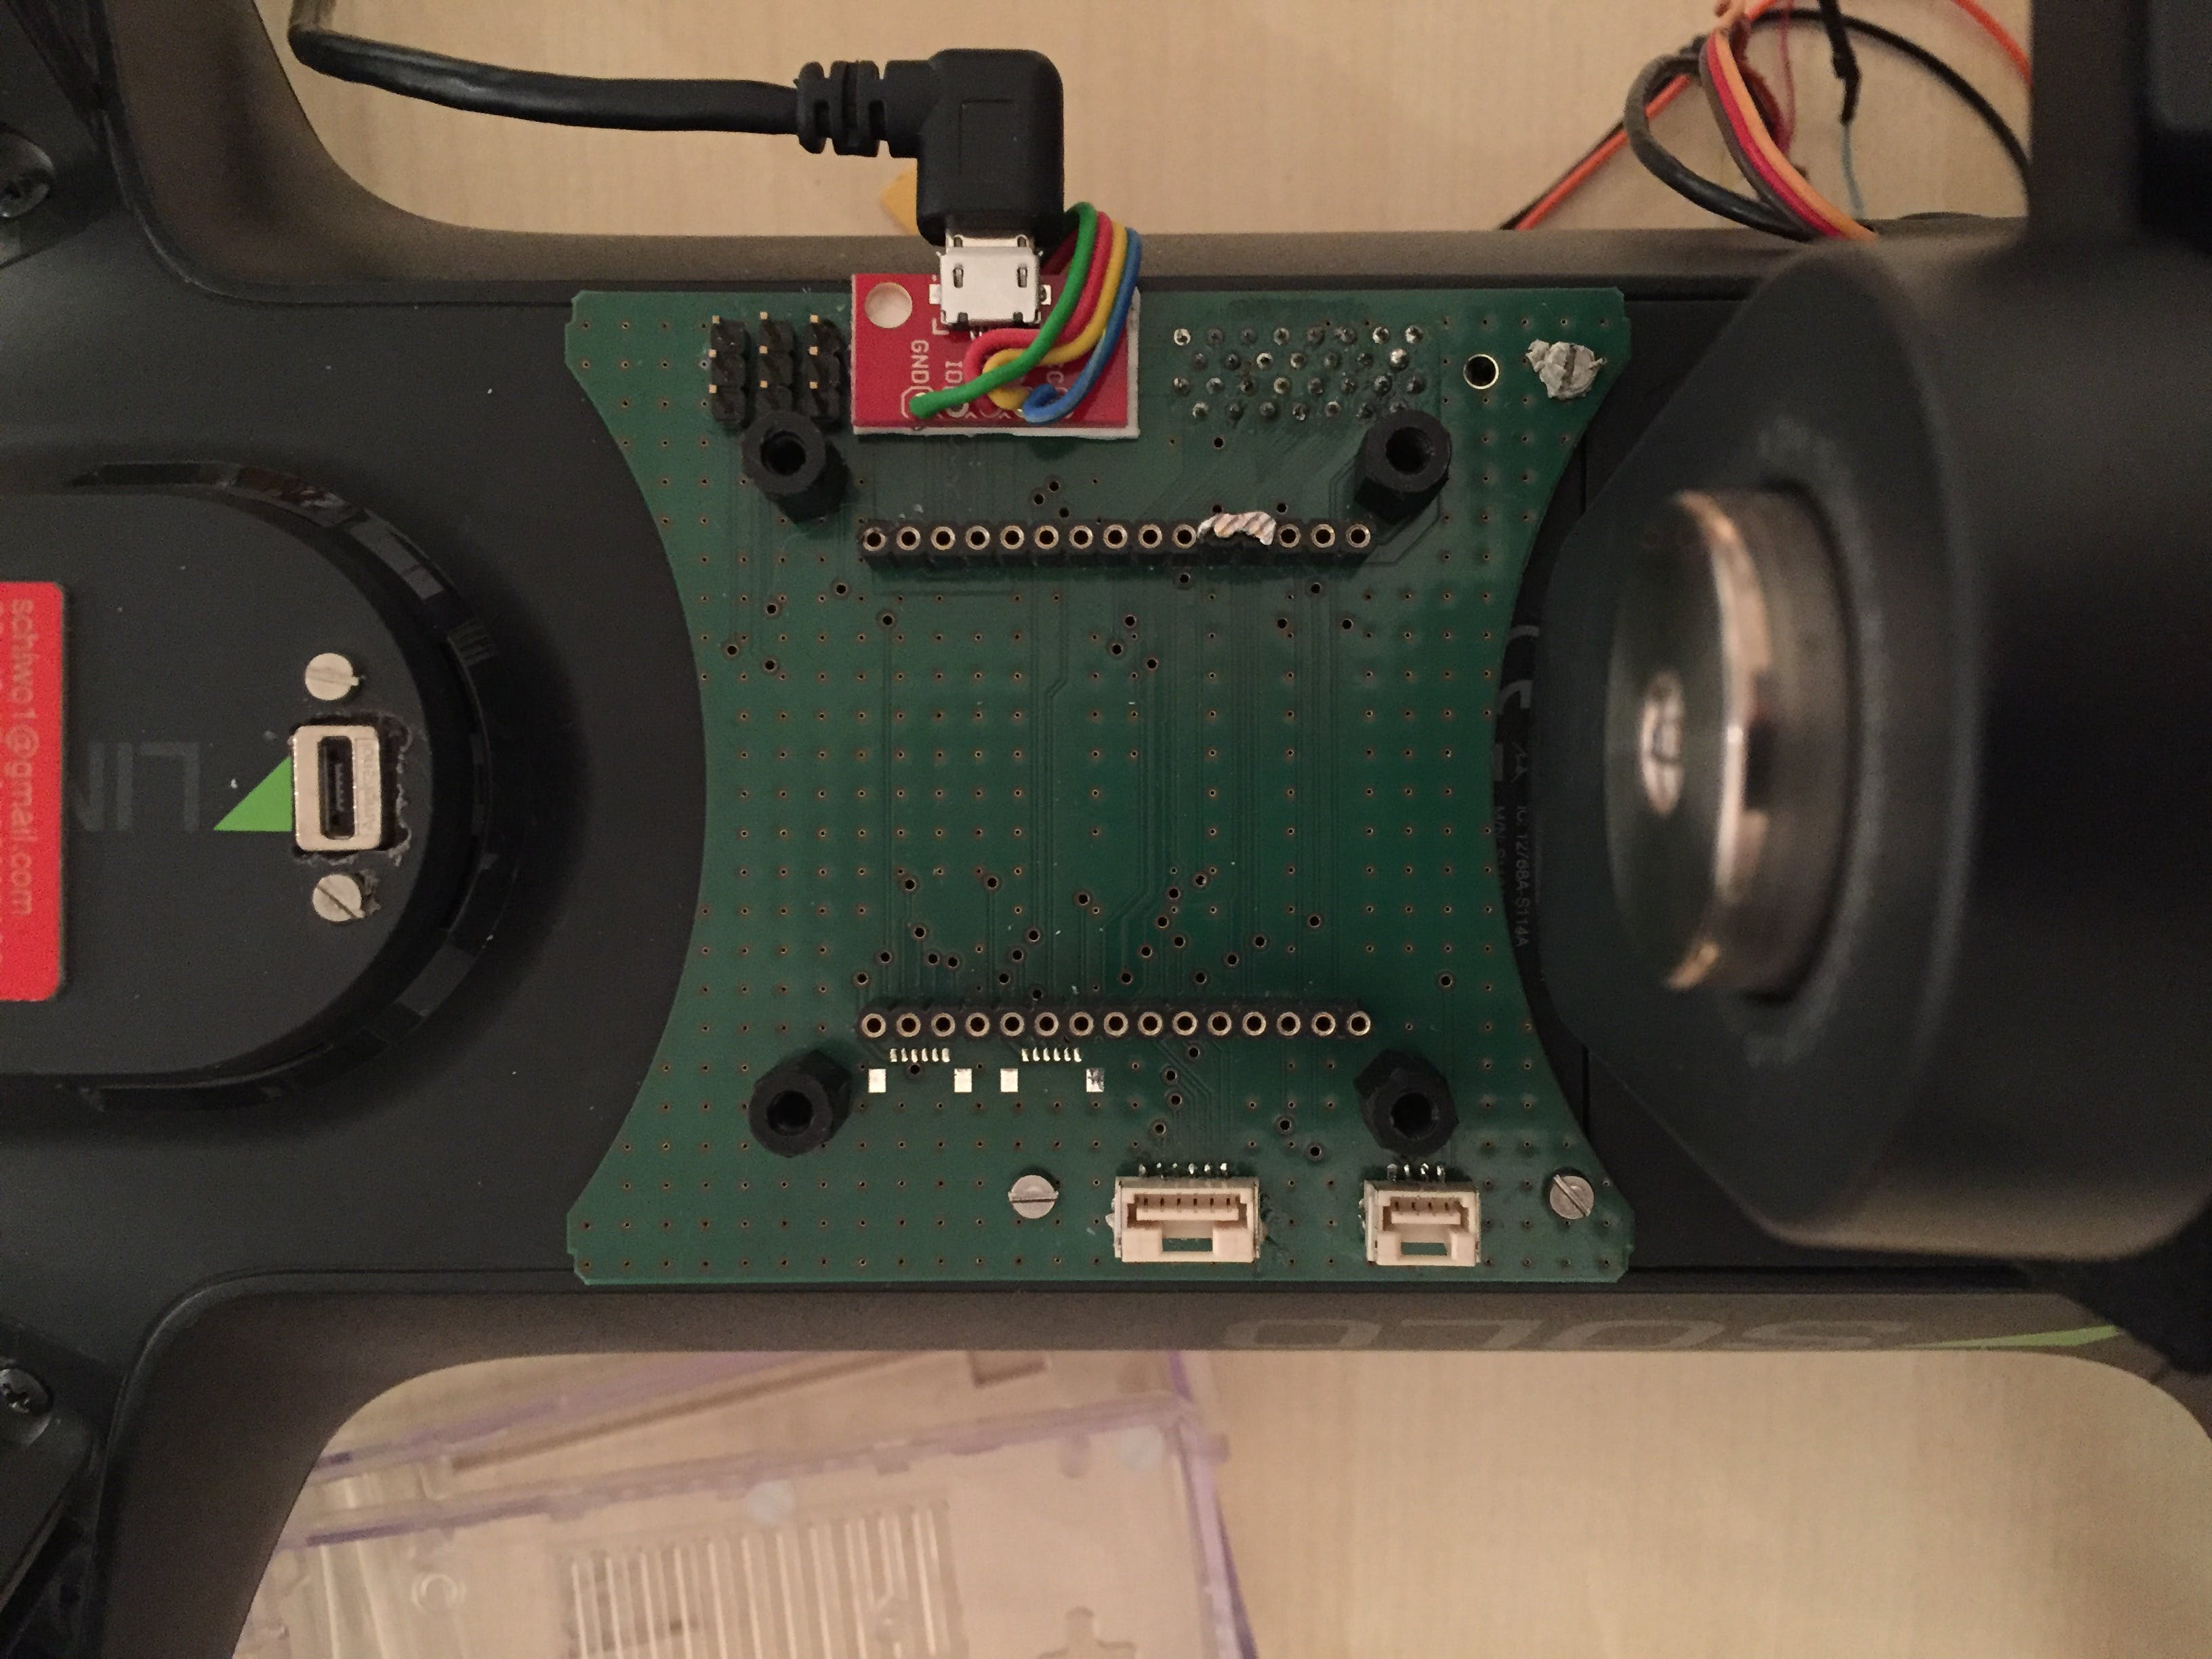 Attach the Breakout Board and bridge the 3DRID pin to GND